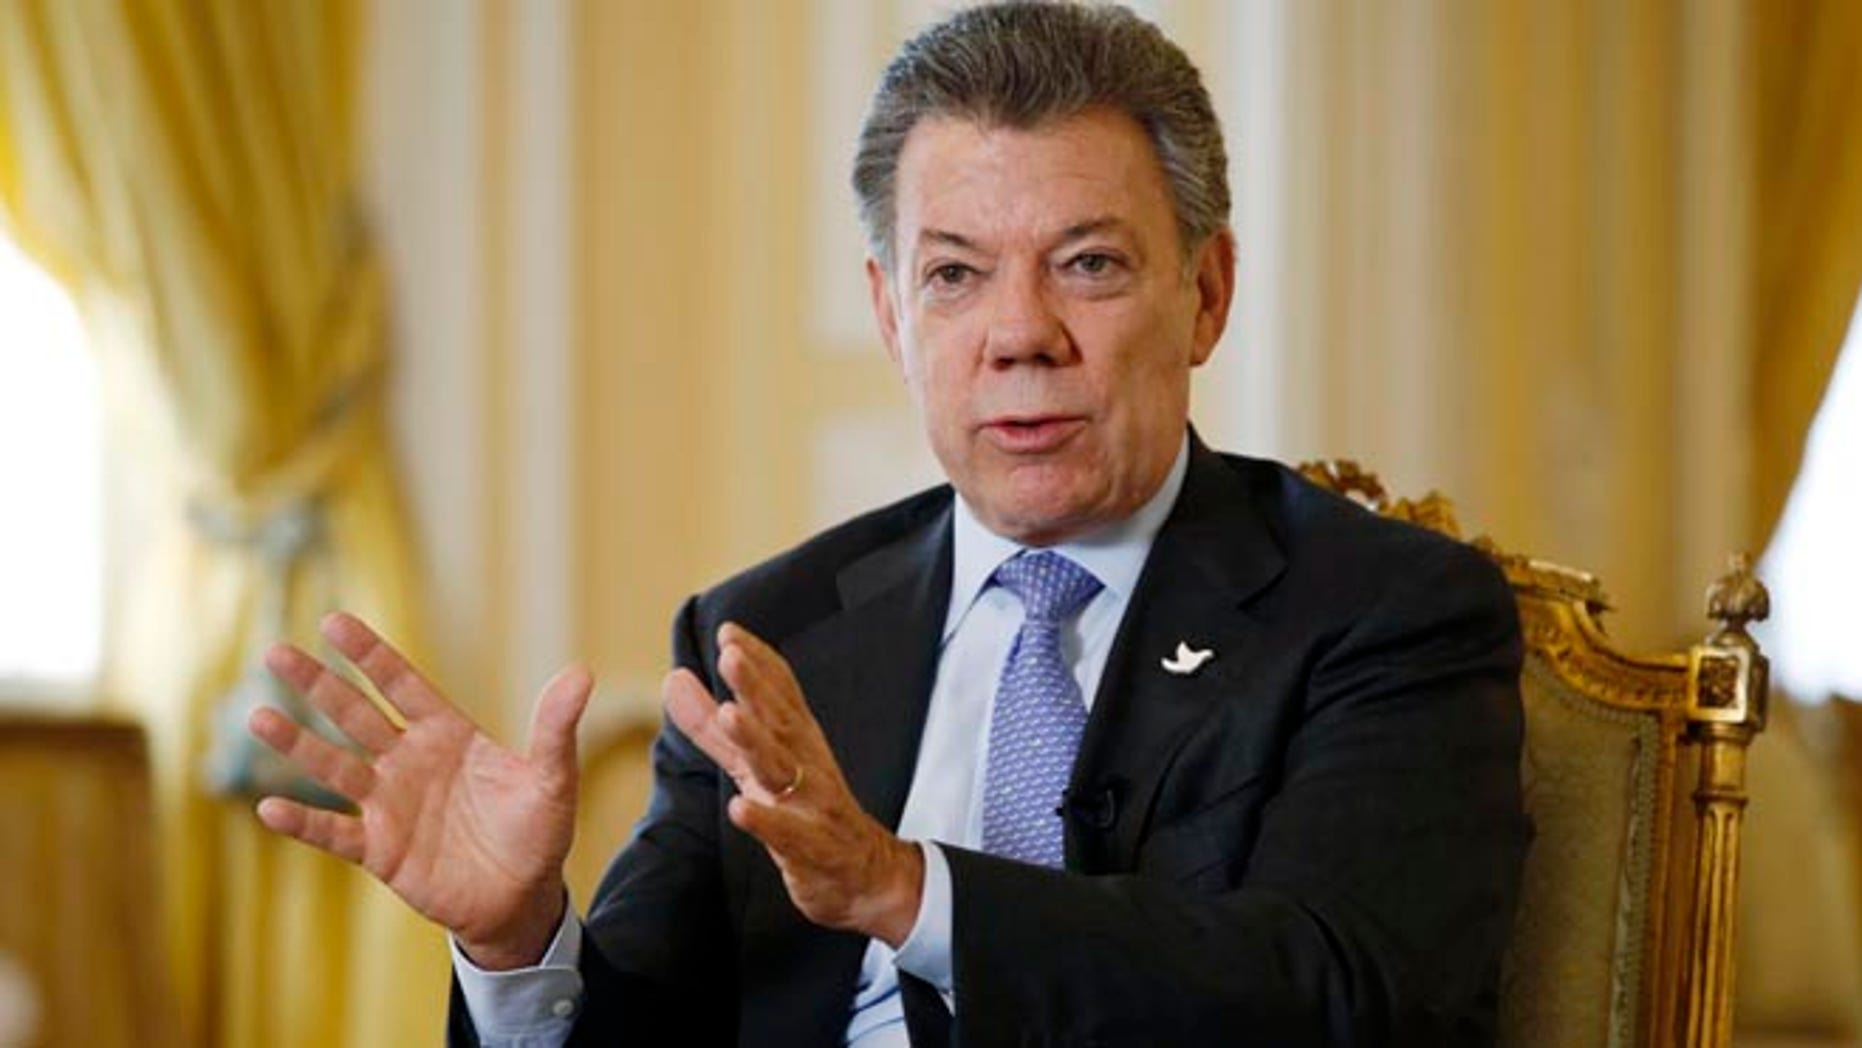 Colombia's President Juan Manuel Santos answers a question during an interview at the Presidential Palace in Bogota, Colombia, Thursday, Jan. 28, 2016.  President Santos is hoping the U.S. will suspend drug warrants against guerrilla commanders and remove the Revolutionary Armed Forces of Colombia from a list of terrorist groups to help cinch a peace deal with Latin Americaâs insurgency. (AP Photo/Fernando Vergara)